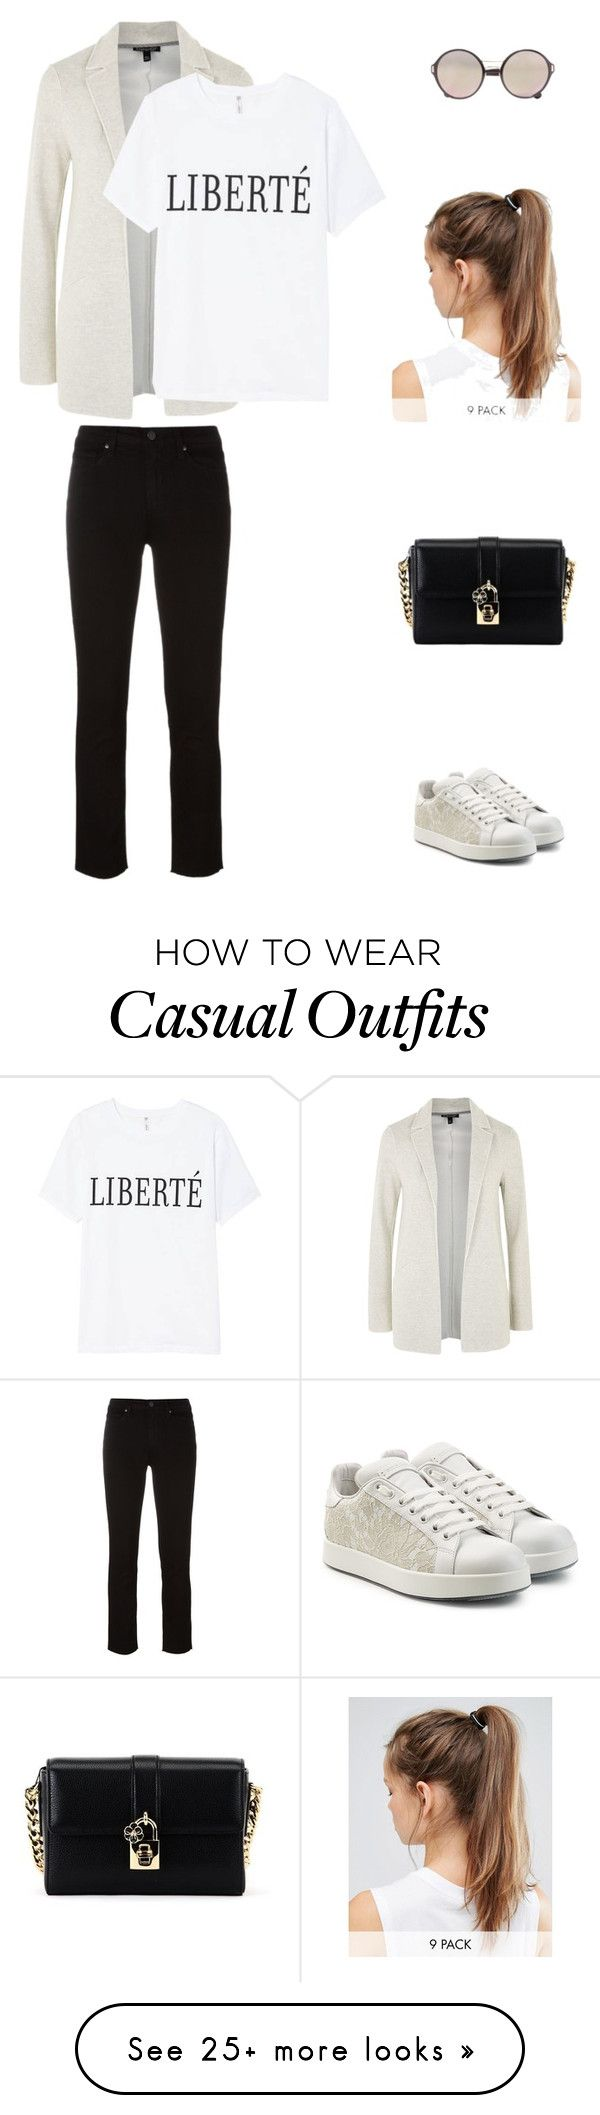 """""""Casual #6"""" by malamati on Polyvore featuring Paige Denim, Topshop, Dolce&Gabbana, Prada and NIKE"""